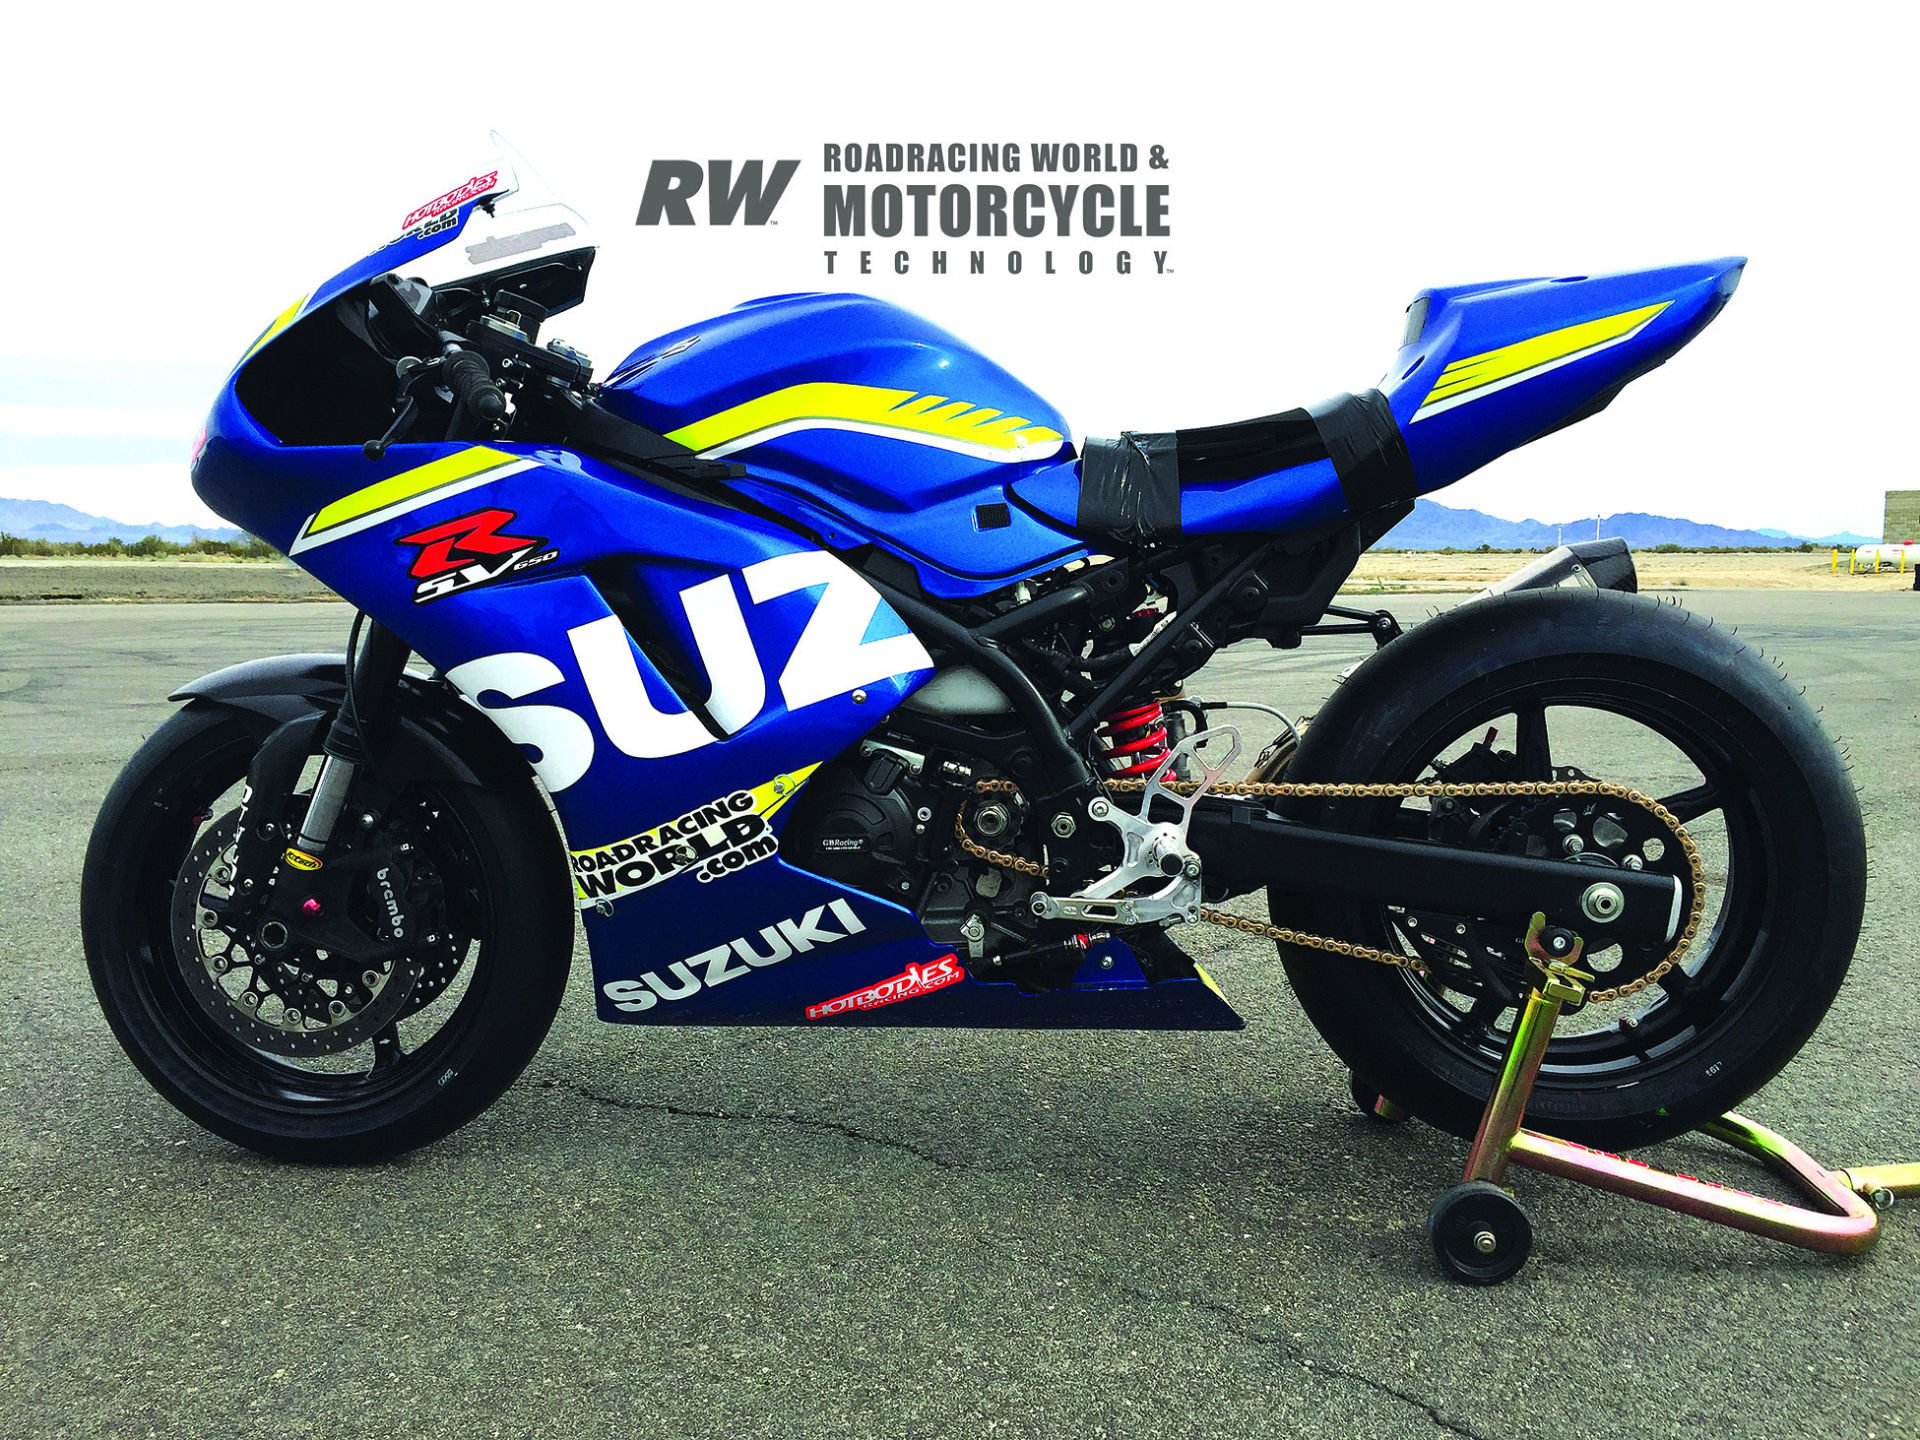 Suzuki Sv650 Project Motoamerica Twins Cup Title Winner P2 In The May Issue Roadracing World Magazine Motorcycle Riding Racing Tech News